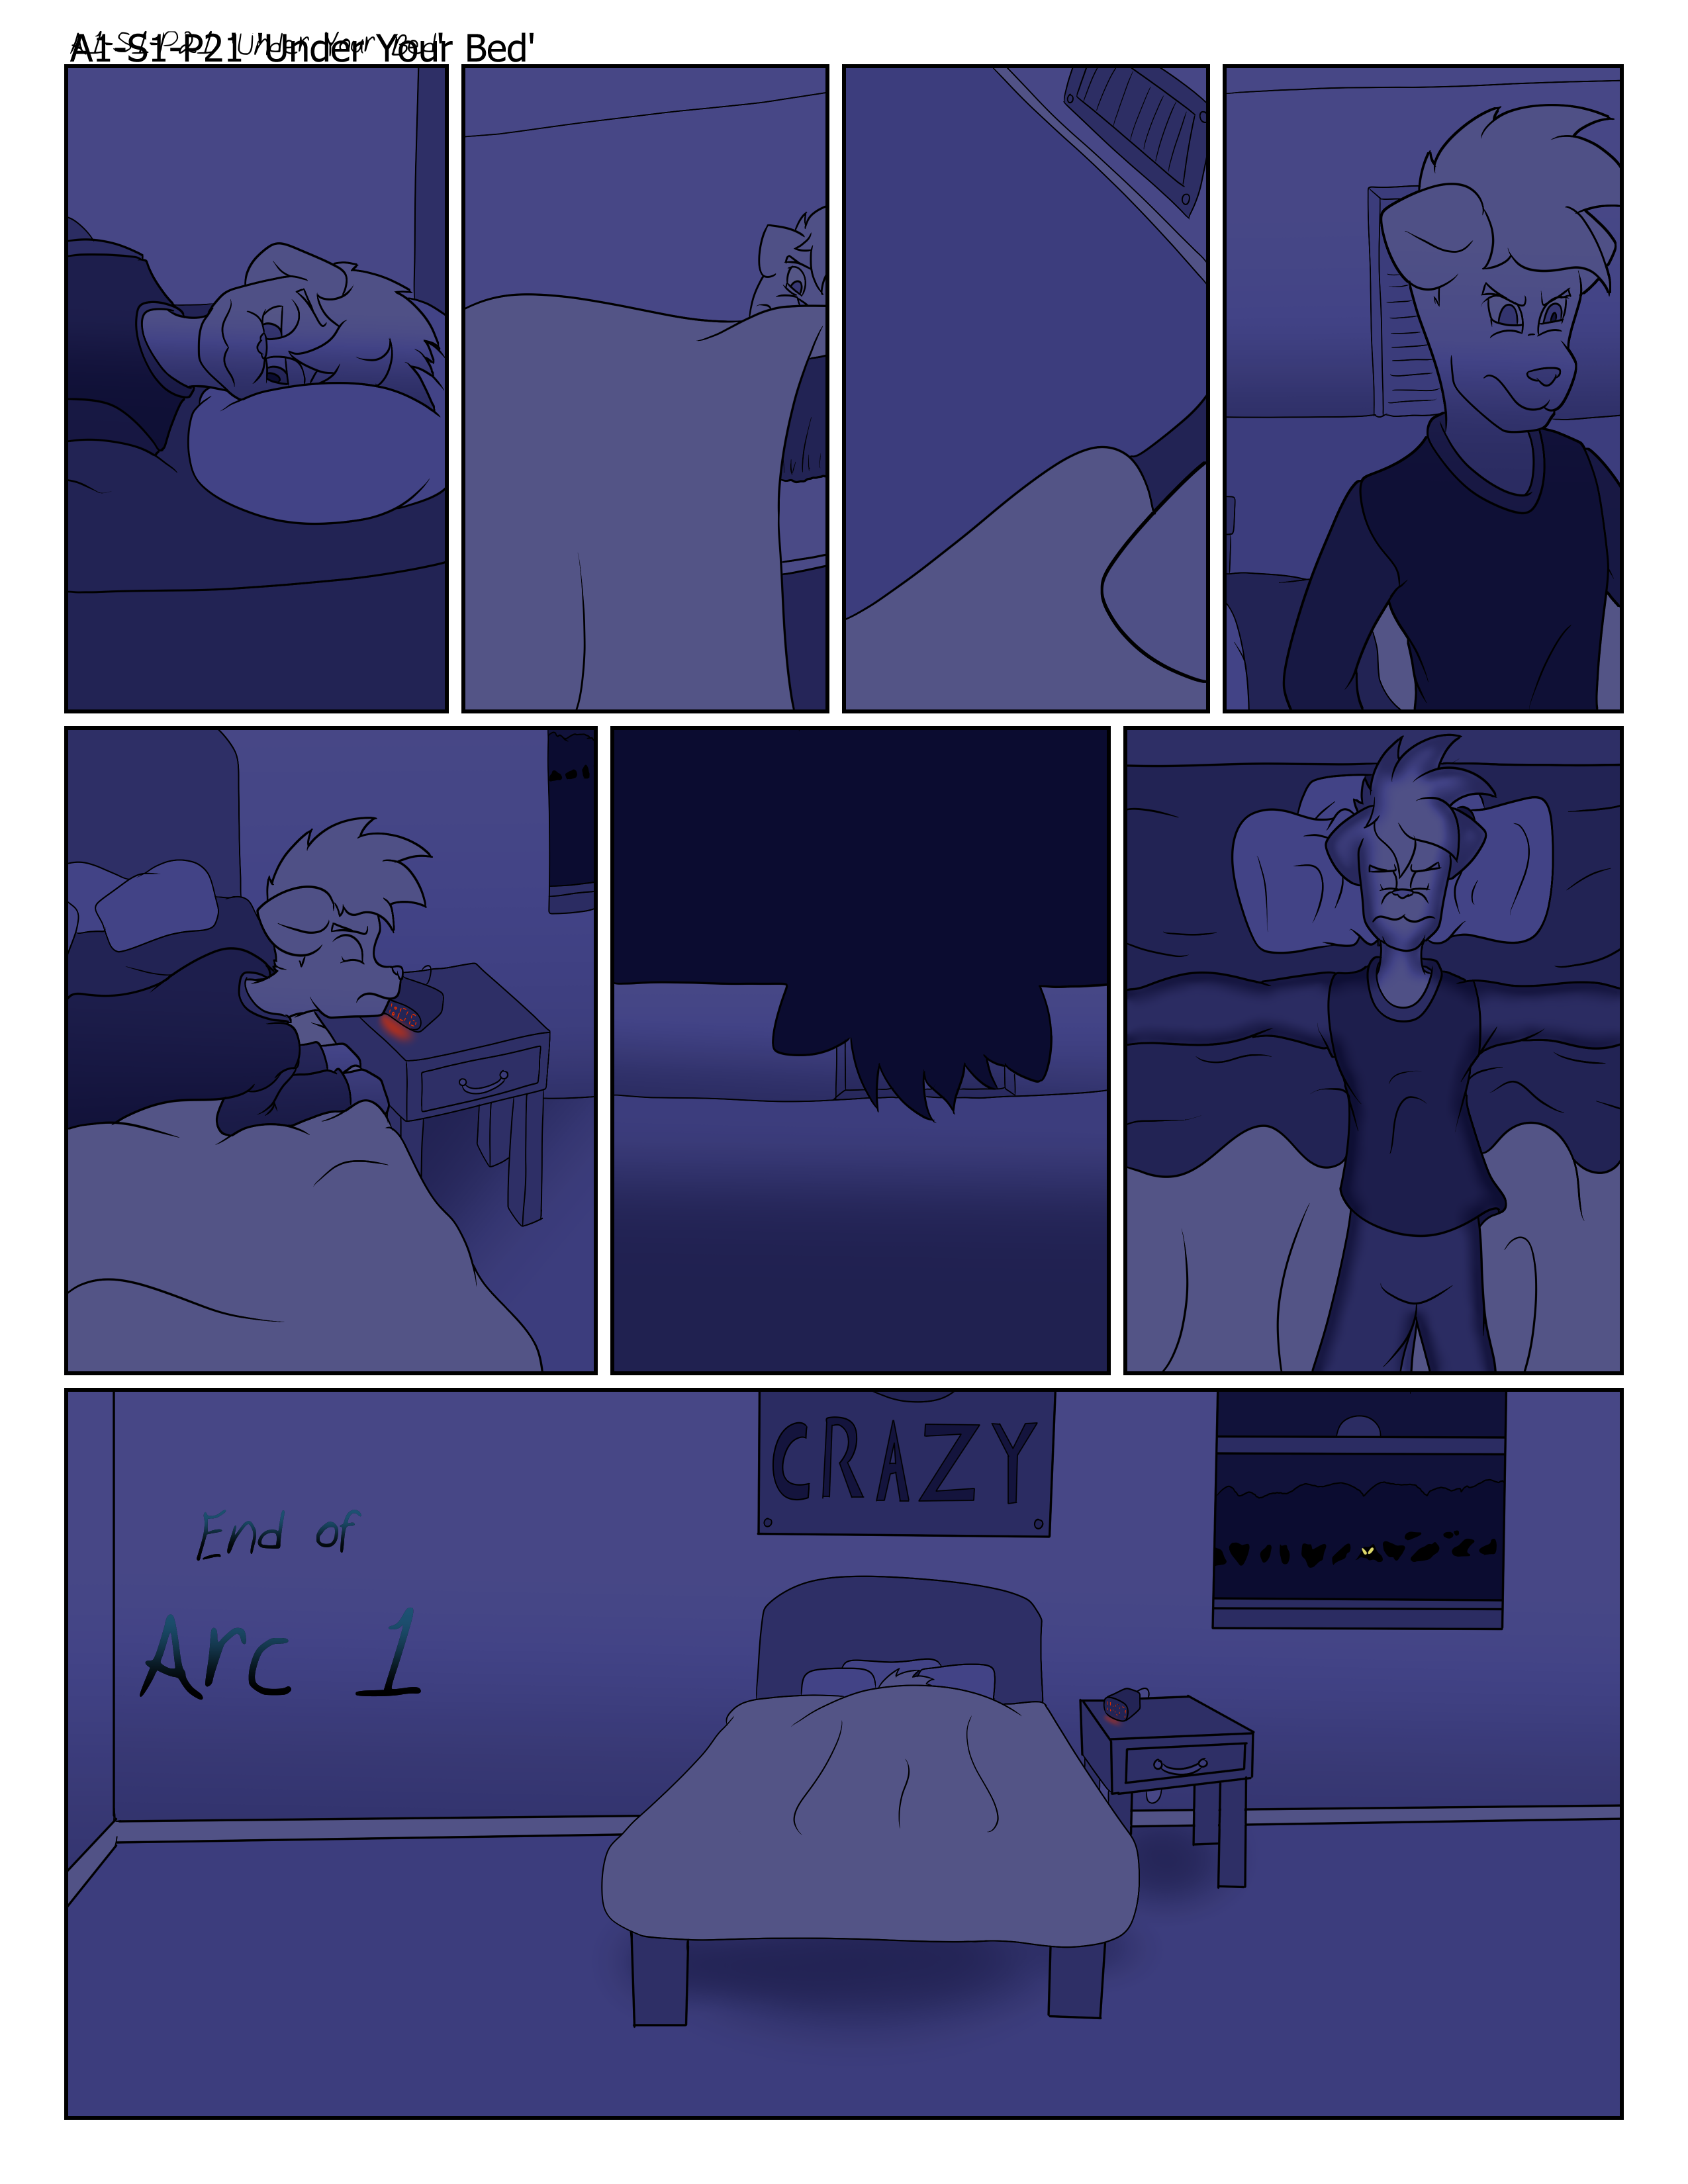 A1-s1-p21 'under Your Bed'